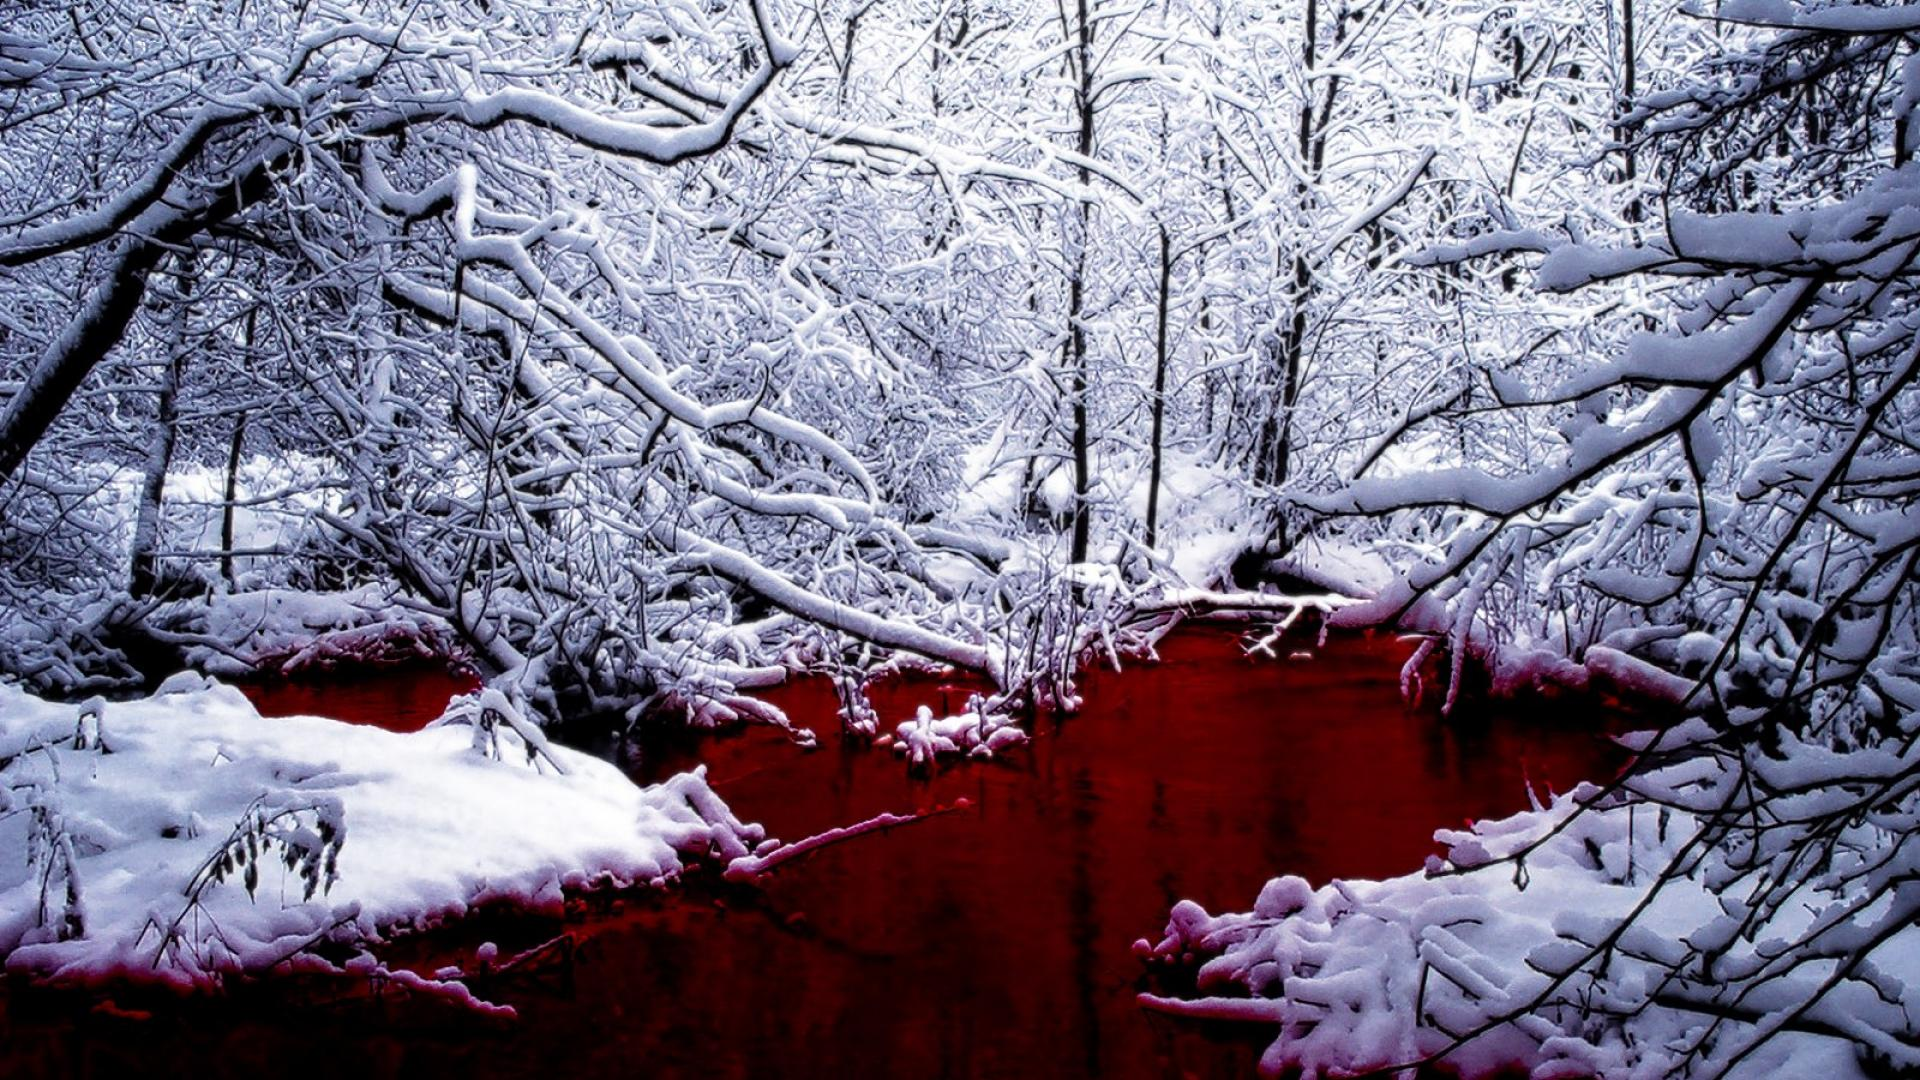 1920x1080-winter-bloody-river-blood-awesome-artwork-HD-1920%C3%971080-wallpaper-wp380951